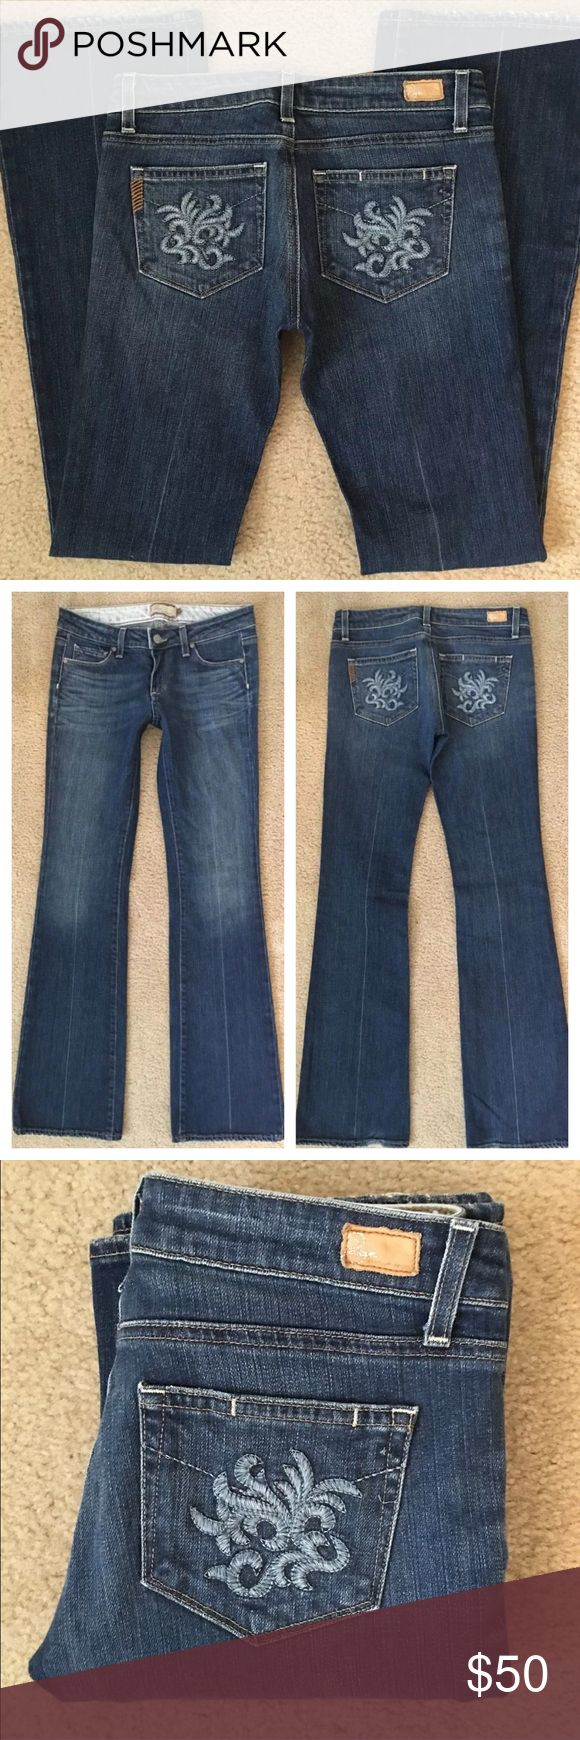 """Paige Premium Denim Laurel Canyon Las Palmas Jeans Tag Size - 27 Waist Measured Across - 14.5"""" Inseam - 34"""" Rise - 7.5"""" Great used condition with just a little fray to the rear cuffs. Paige Jeans Jeans Boot Cut"""